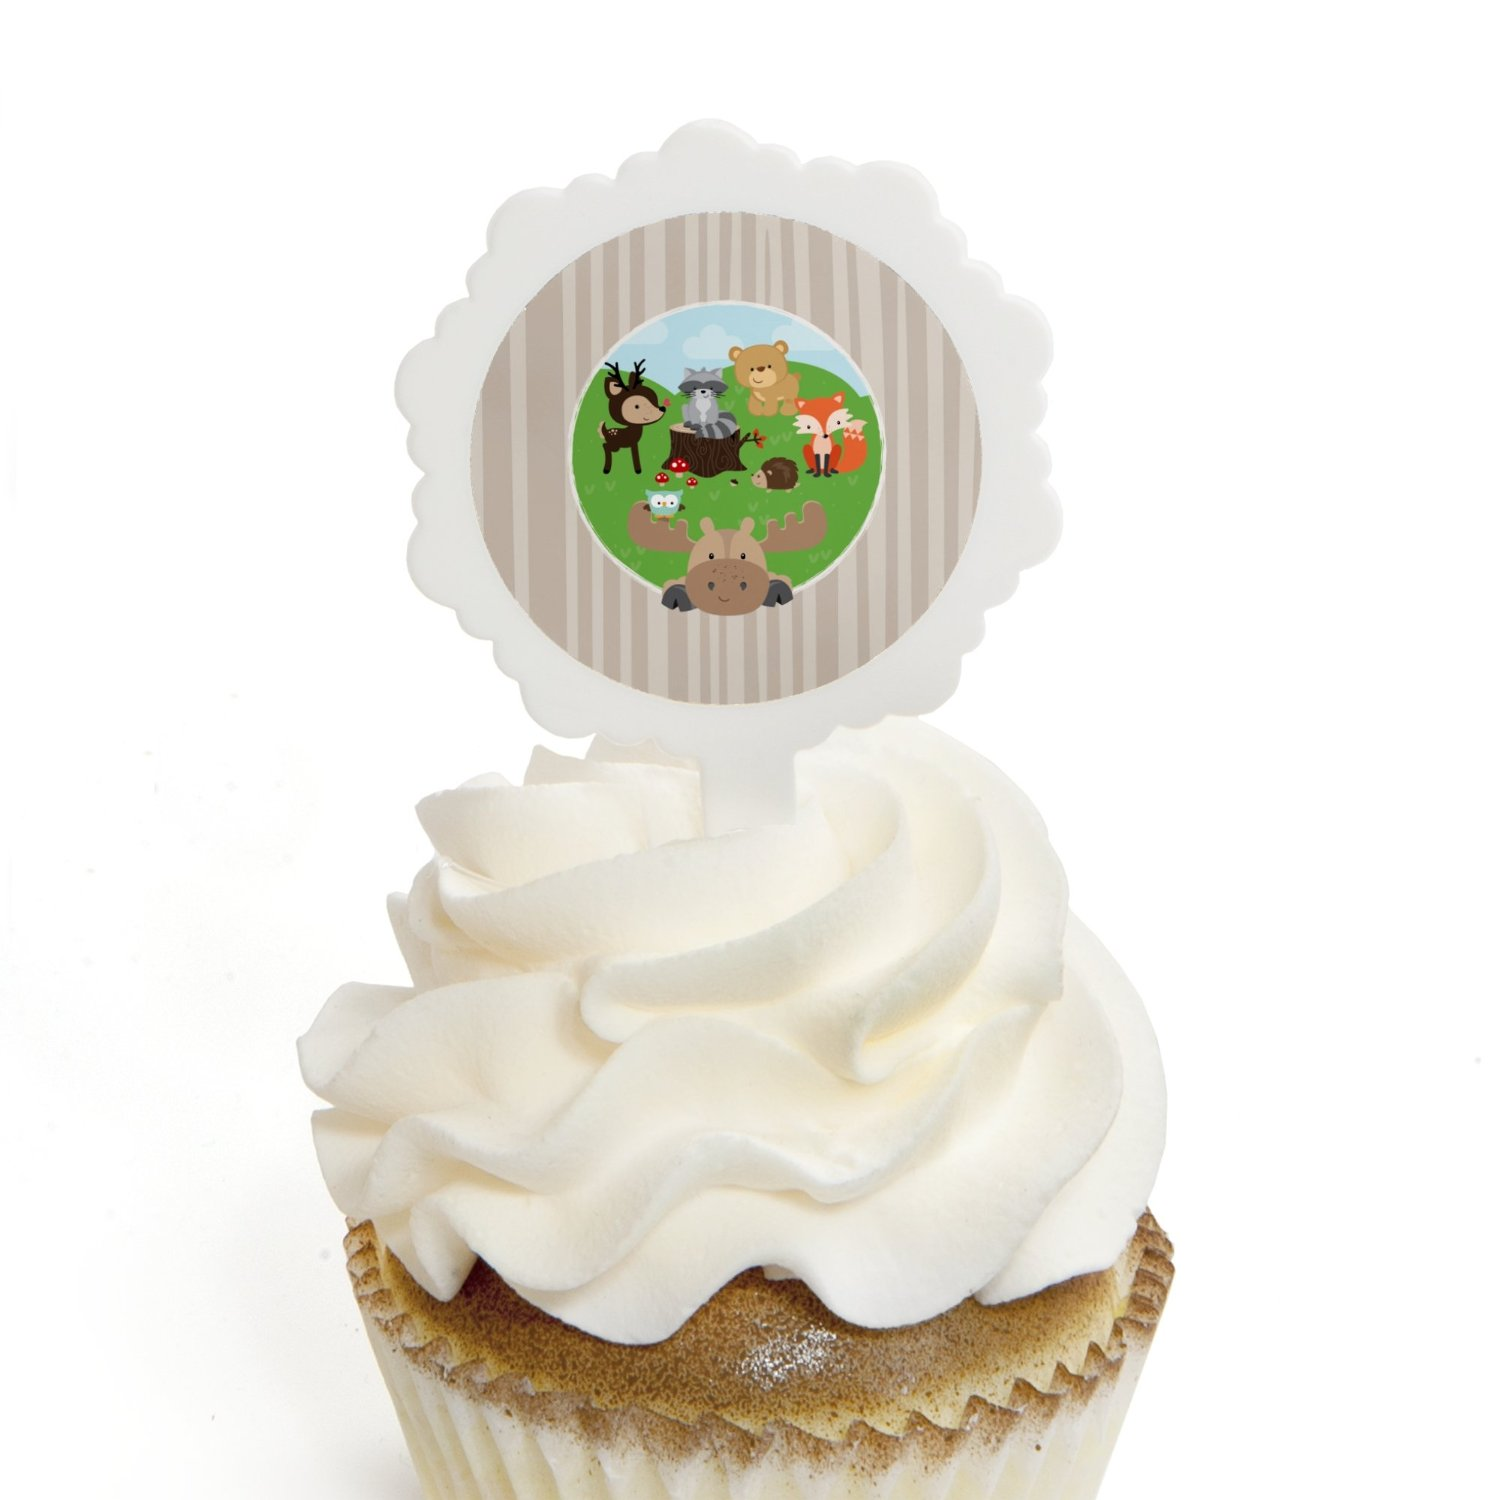 Woodland Creatures - Cupcake Picks with Stickers - Baby Shower or Birthday Party Cupcake Toppers - 12 Count